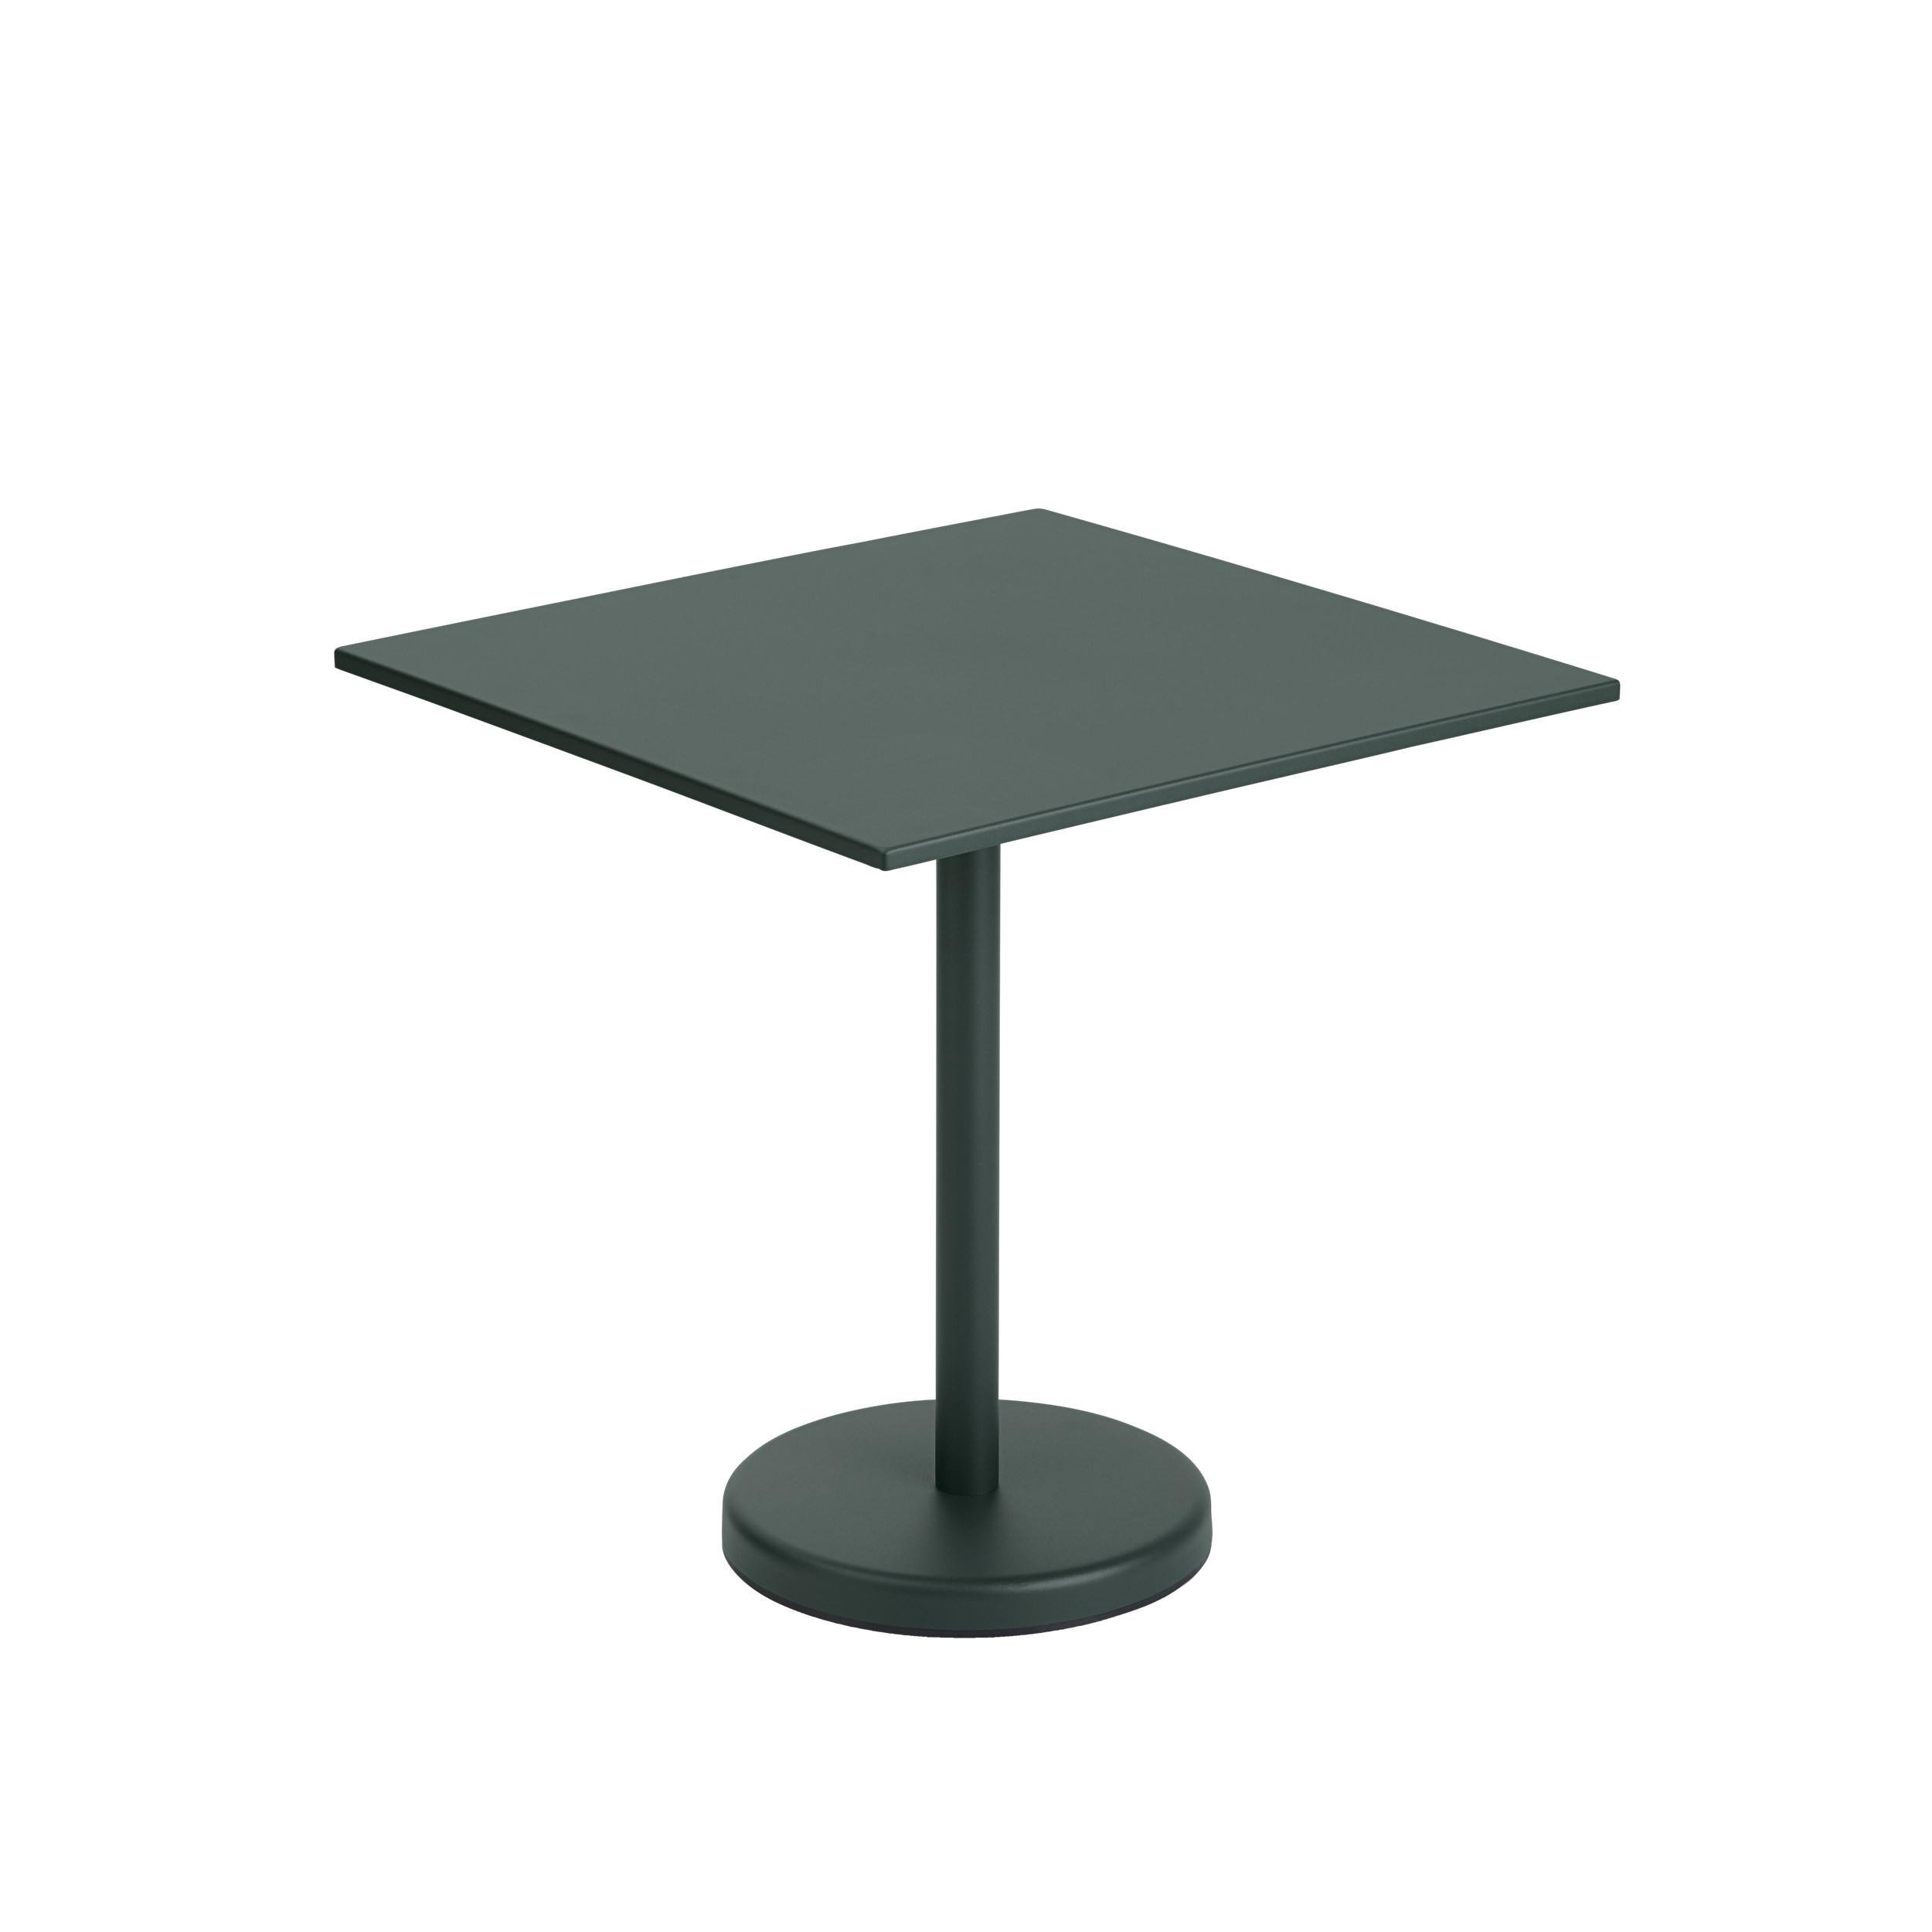 Linear Steel Cafe Table 70 x 70cm